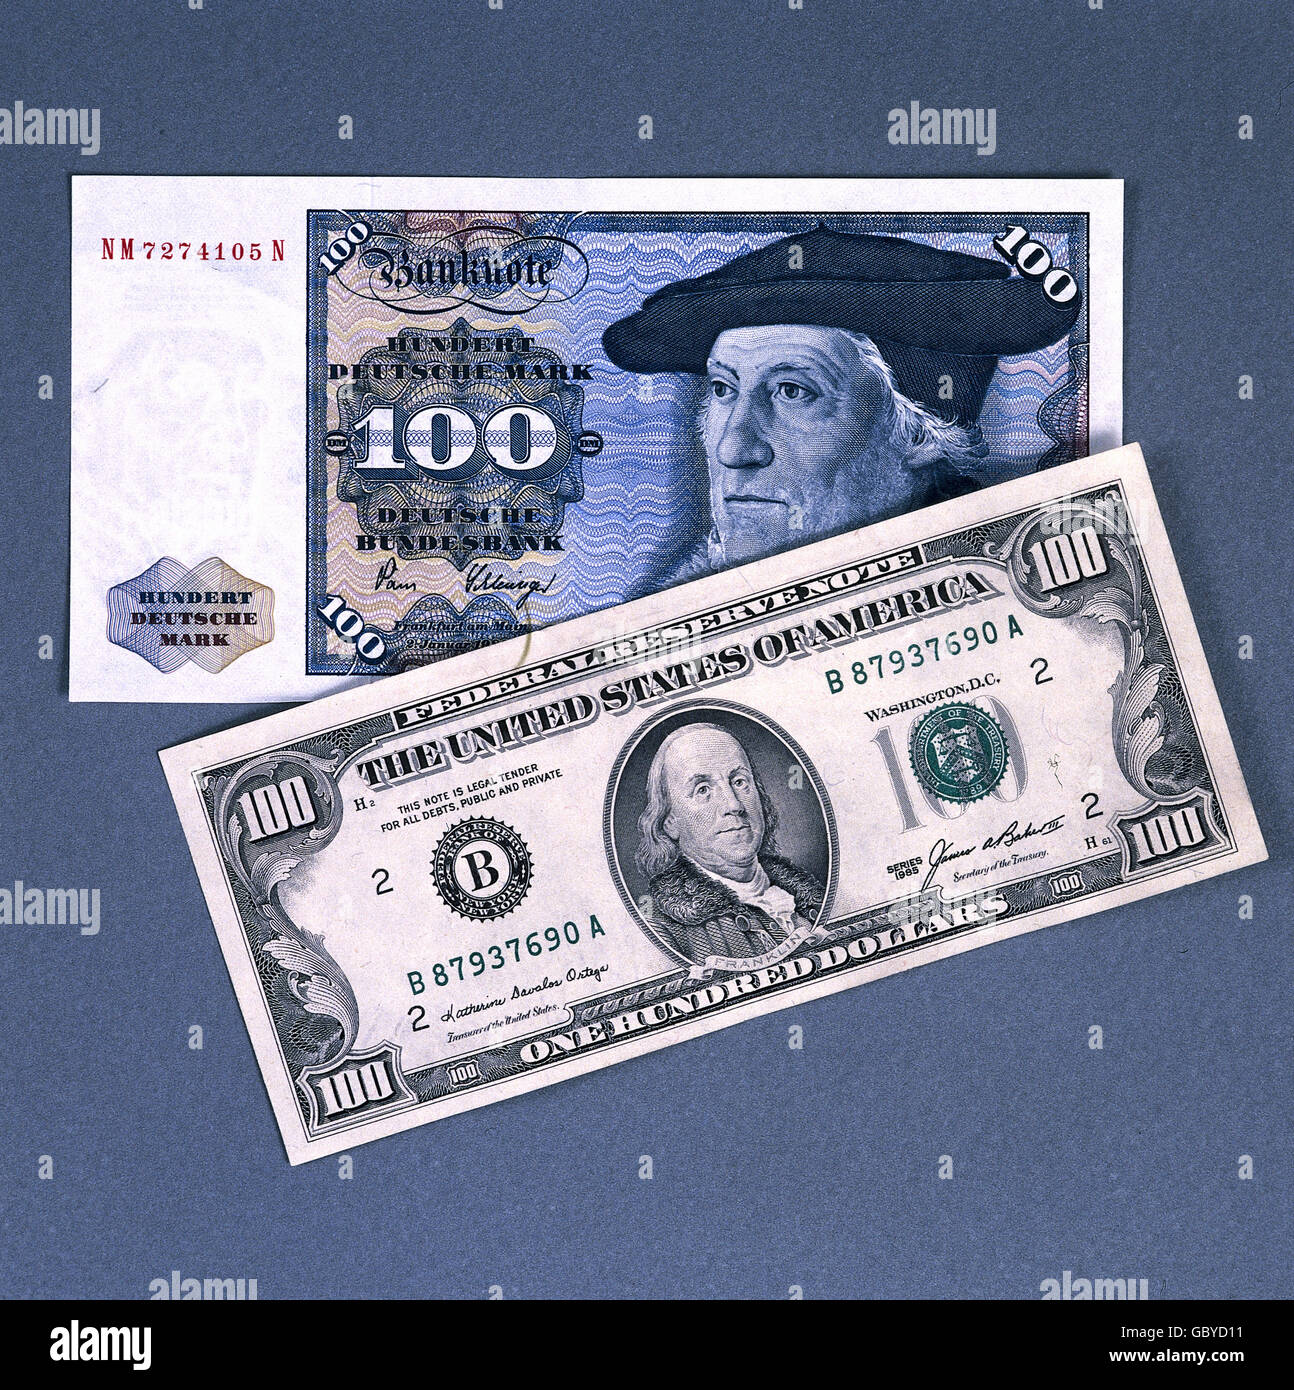 money / finance, bank notes, 100 DM and 100 dollar, 1960s - 1980s, Additional-Rights-Clearences-NA - Stock Image